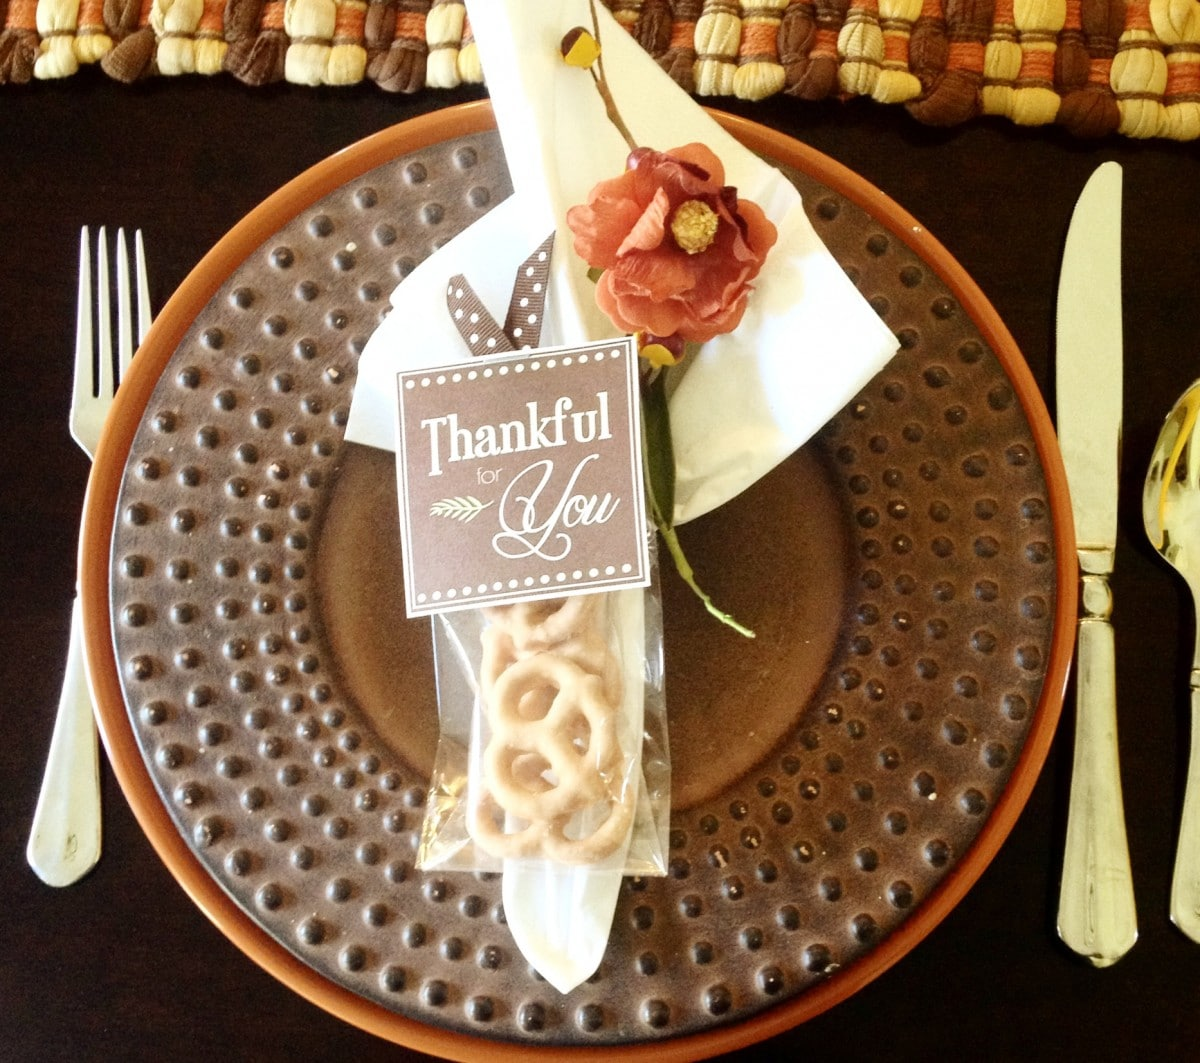 thanksgiving table favors. Let Your Thanksgiving Dinner Guests Know You Are Thankful For Them With These Darling Table Favors $3.89. Simply Place The Favor On,